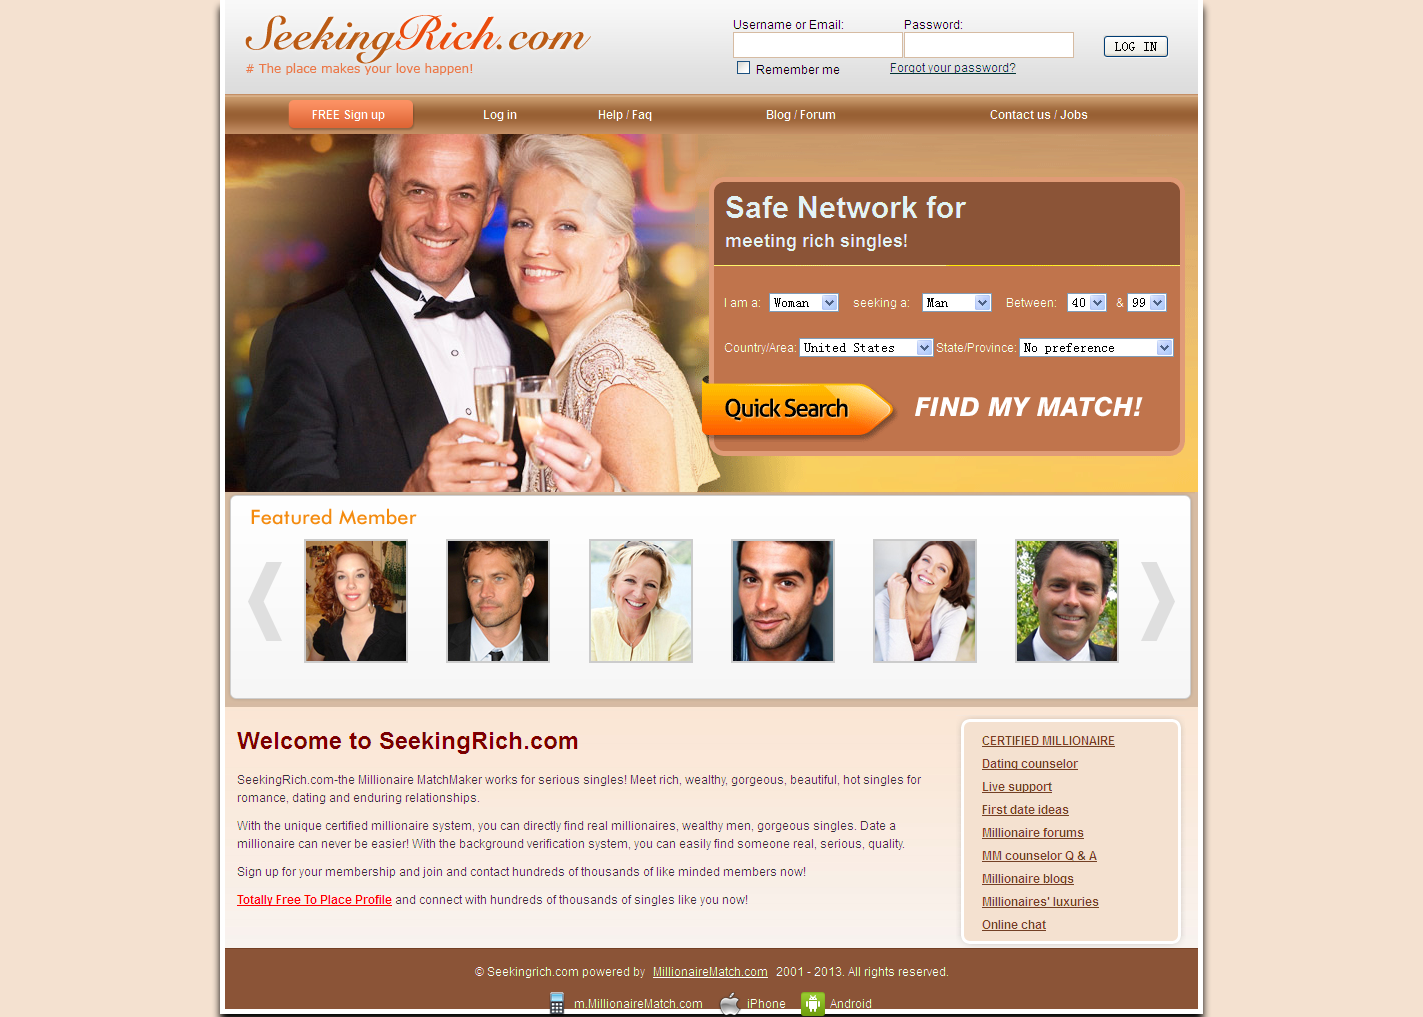 east ellijay singles dating site '#1 trusted dating site every day, an average of 438 singles marry a match they found on eharmony it's free to review your single, compatible matches.